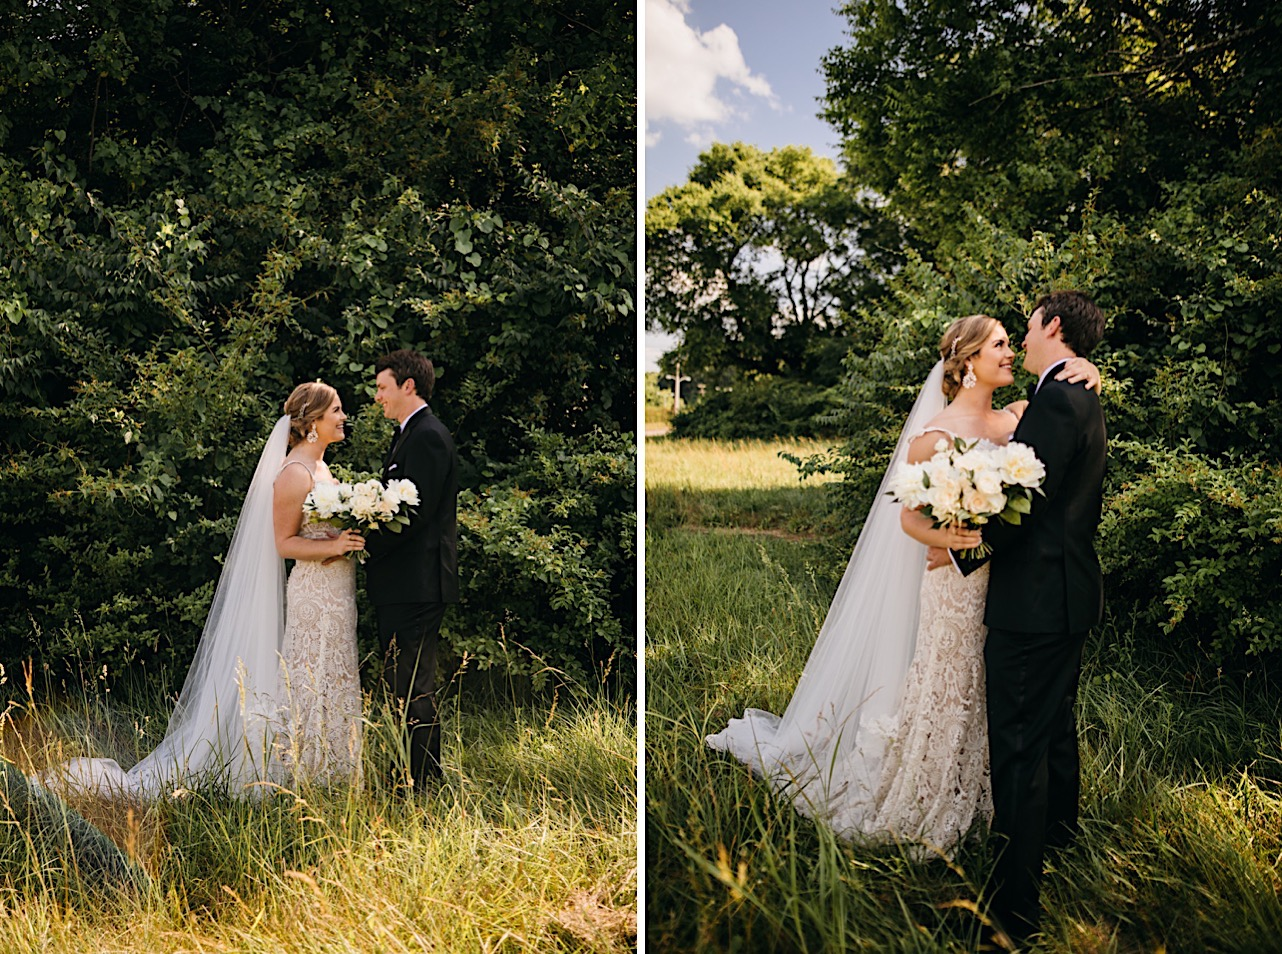 bride and groom stand in a grassy field, one of her arms is around his shoulder and they smile at each other